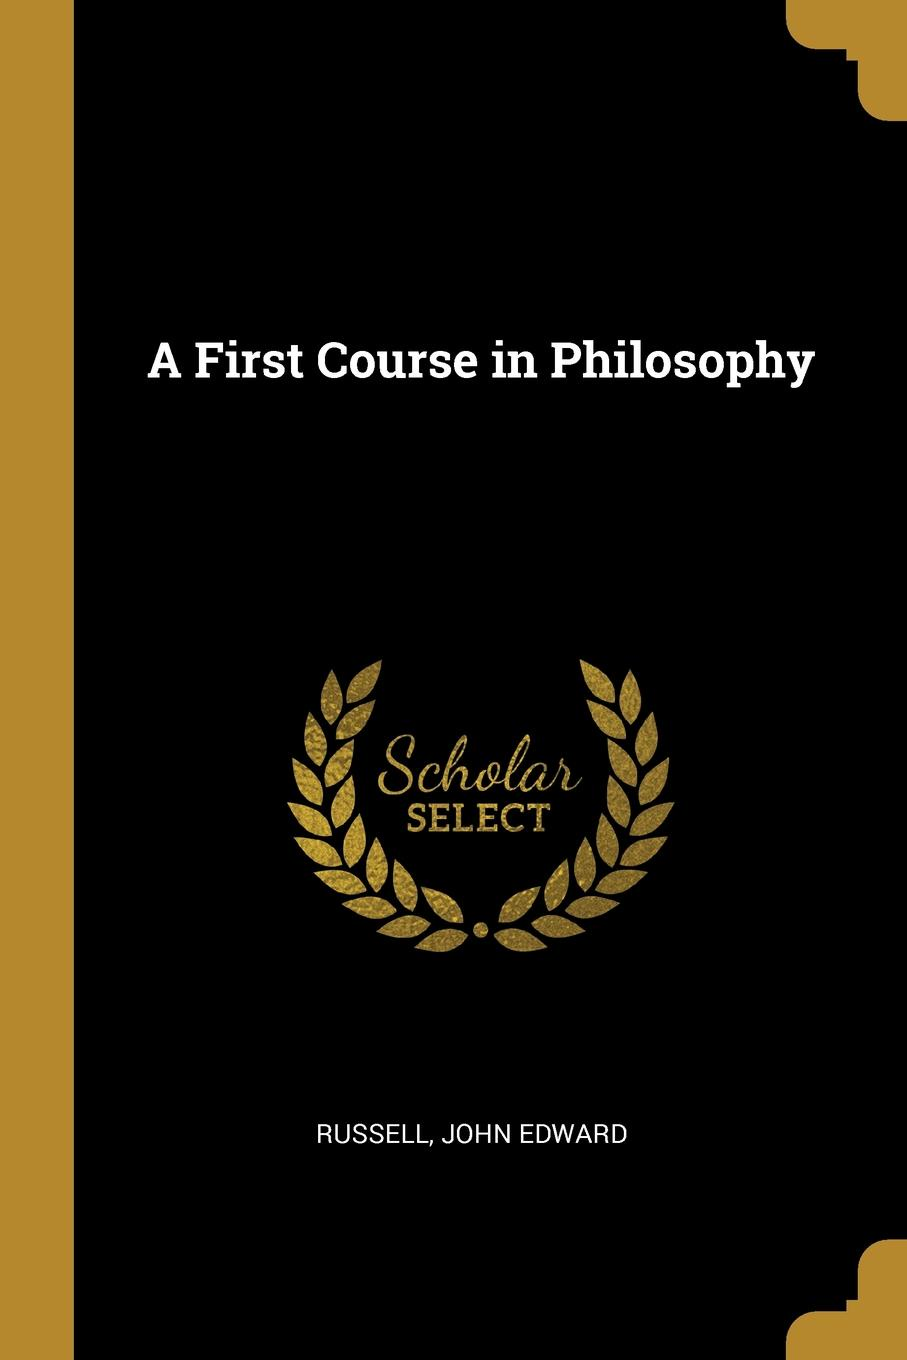 Russell John Edward. A First Course in Philosophy